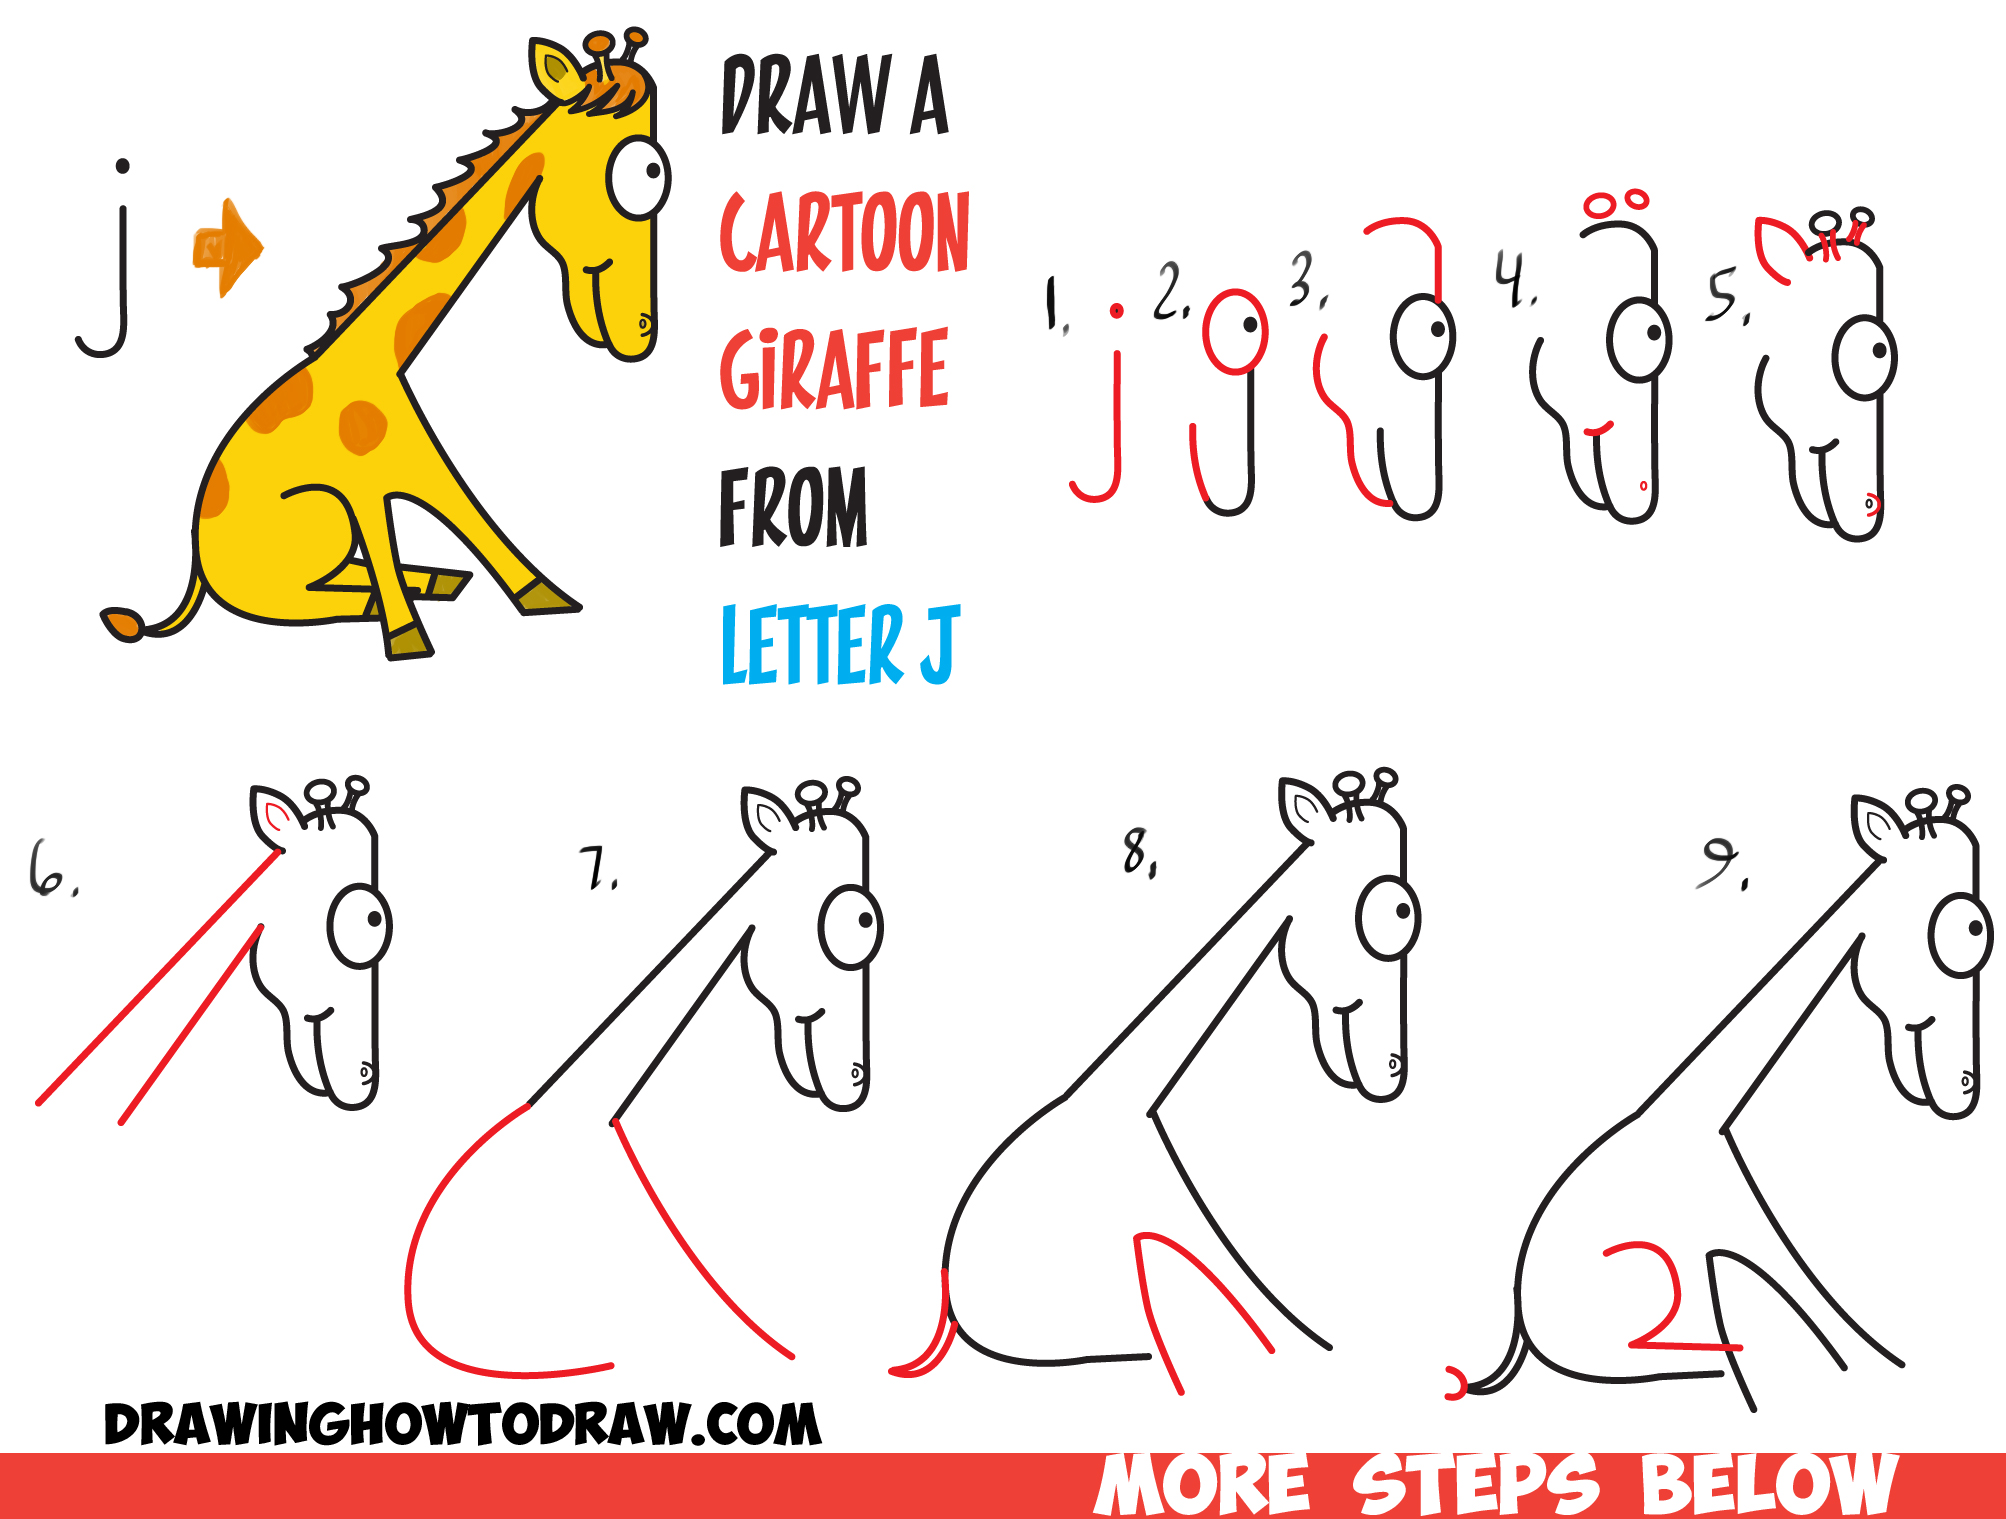 How to Draw a Cartoon Giraffe from Lowercase Letter j Shape in Easy Steps for Kids